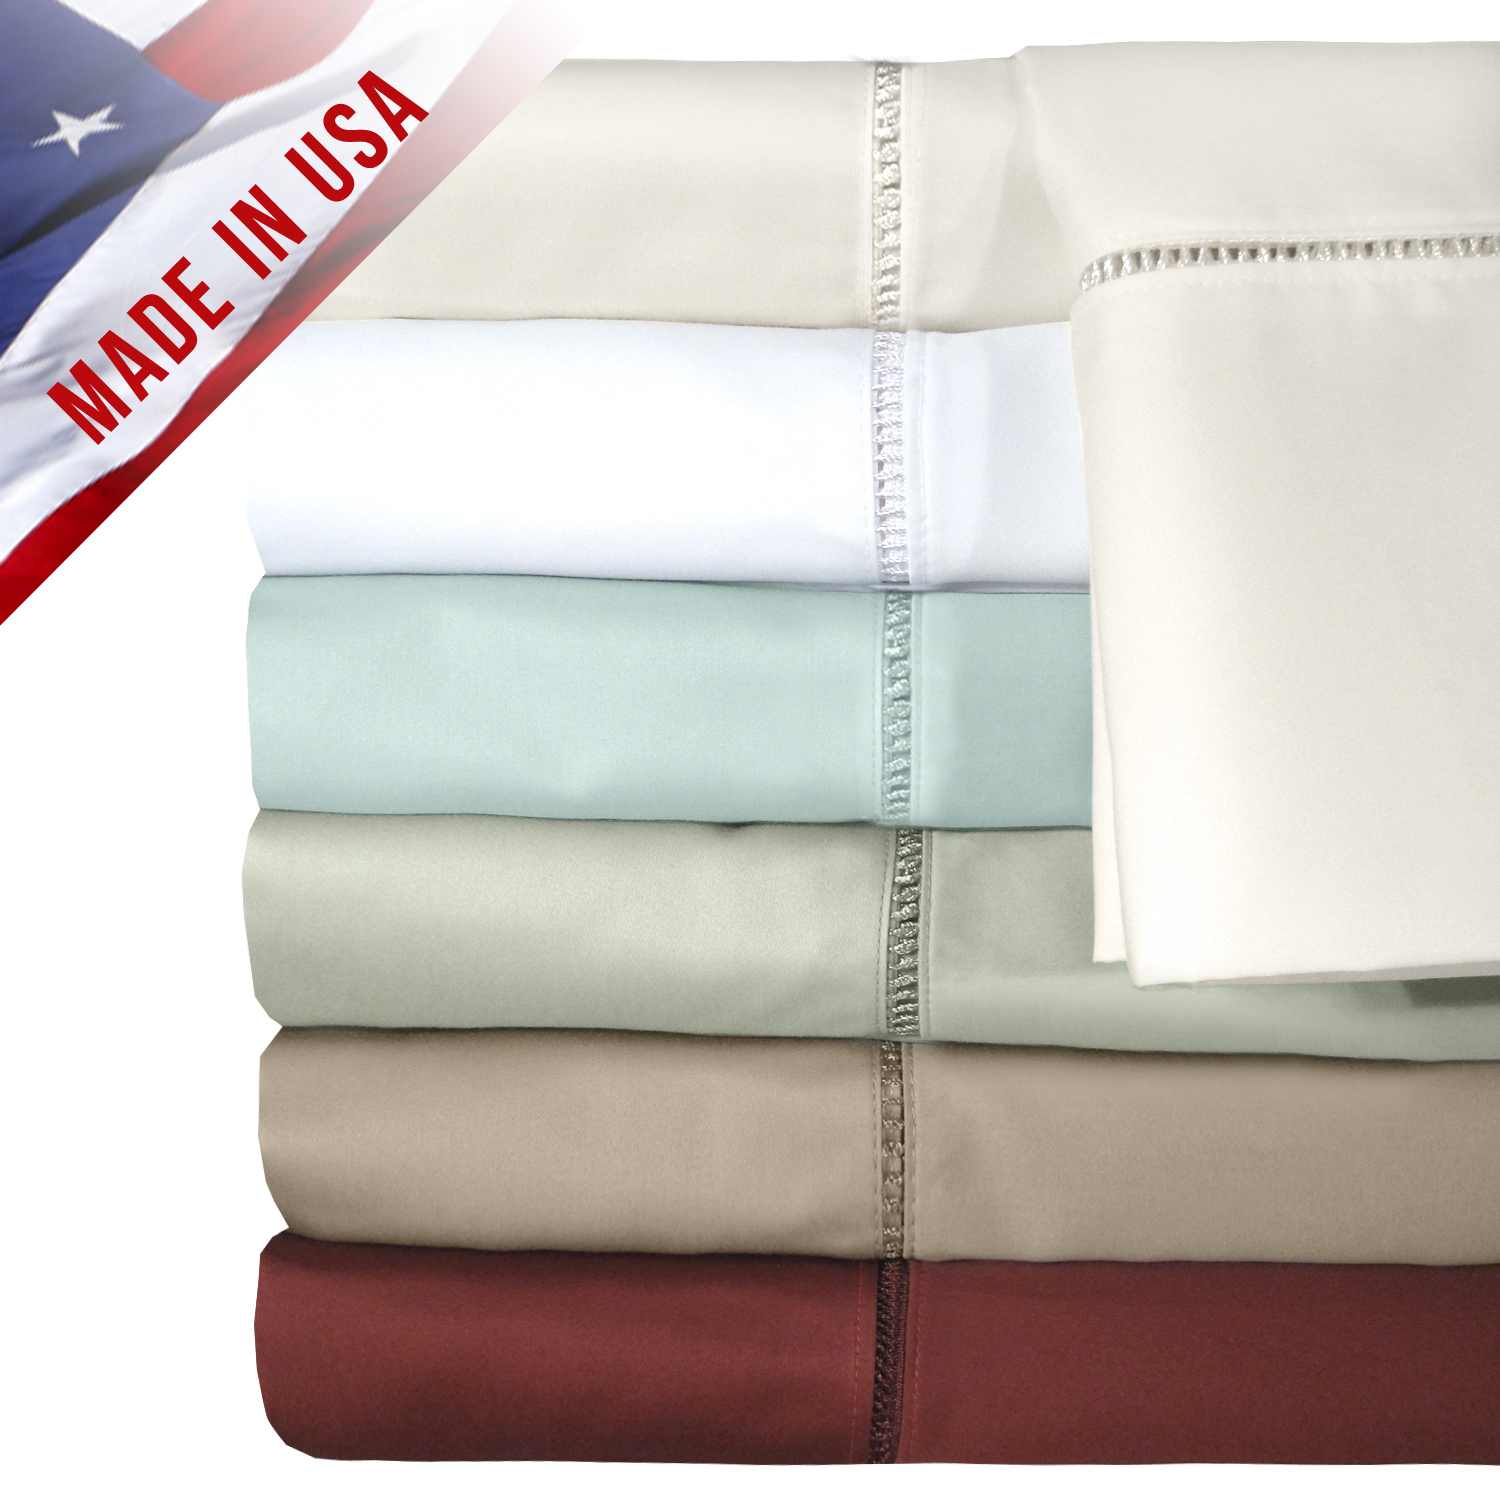 Veratexinc Home Decorative Bedding Collection Legacy Collection 500Tc Sheet Set D.King Merlot at Sears.com